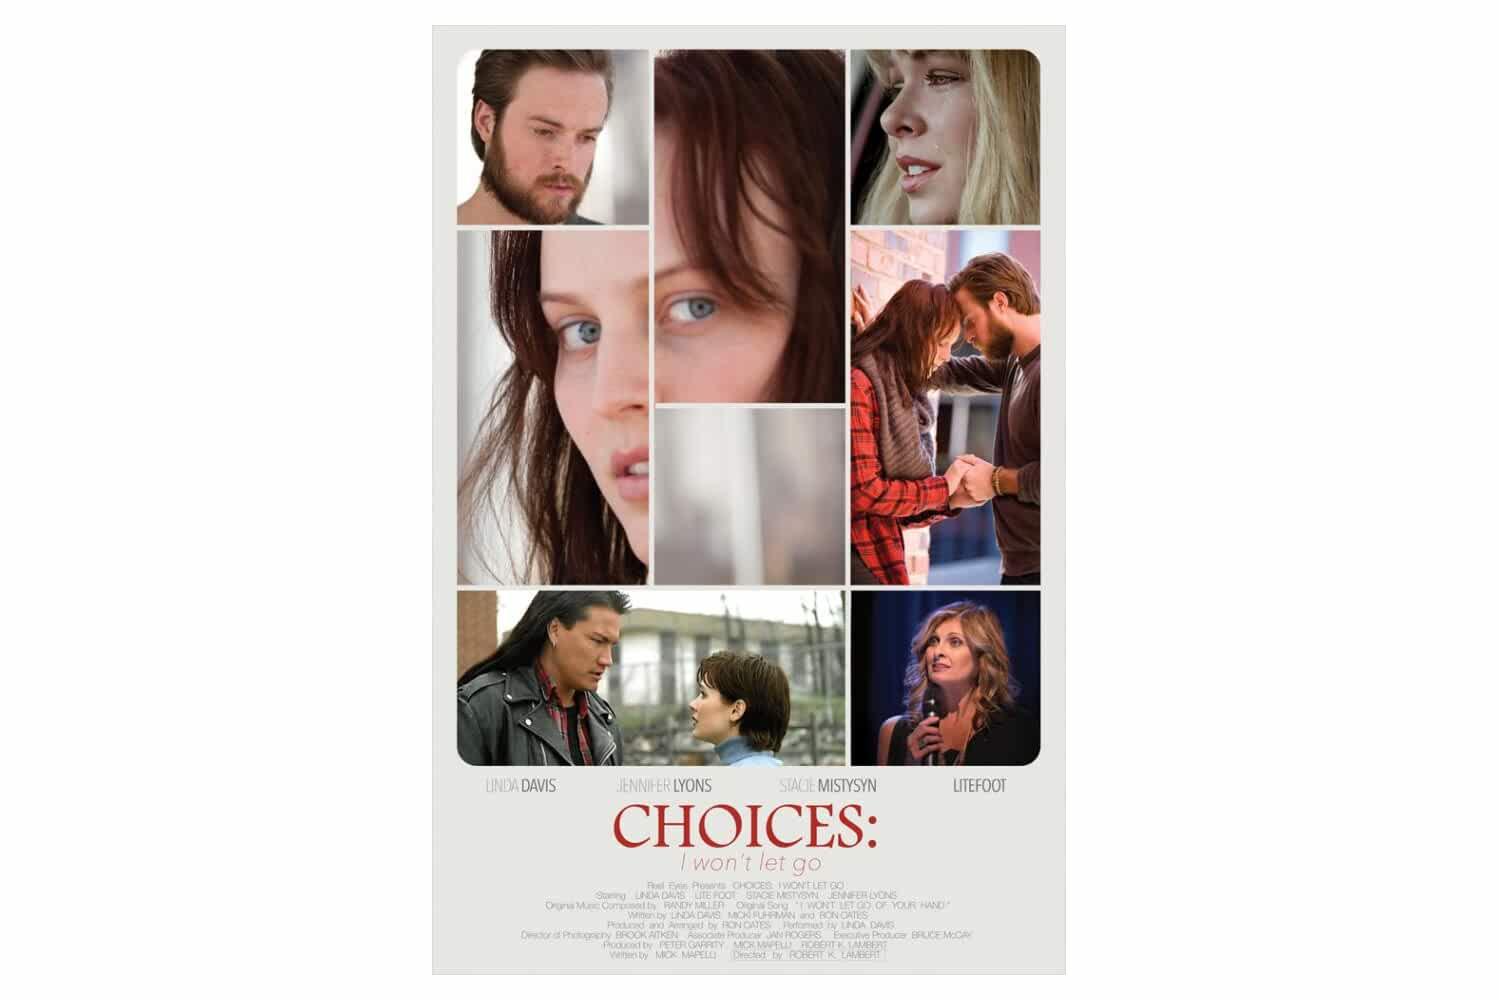 Choices: I Won't Let Go (2018)